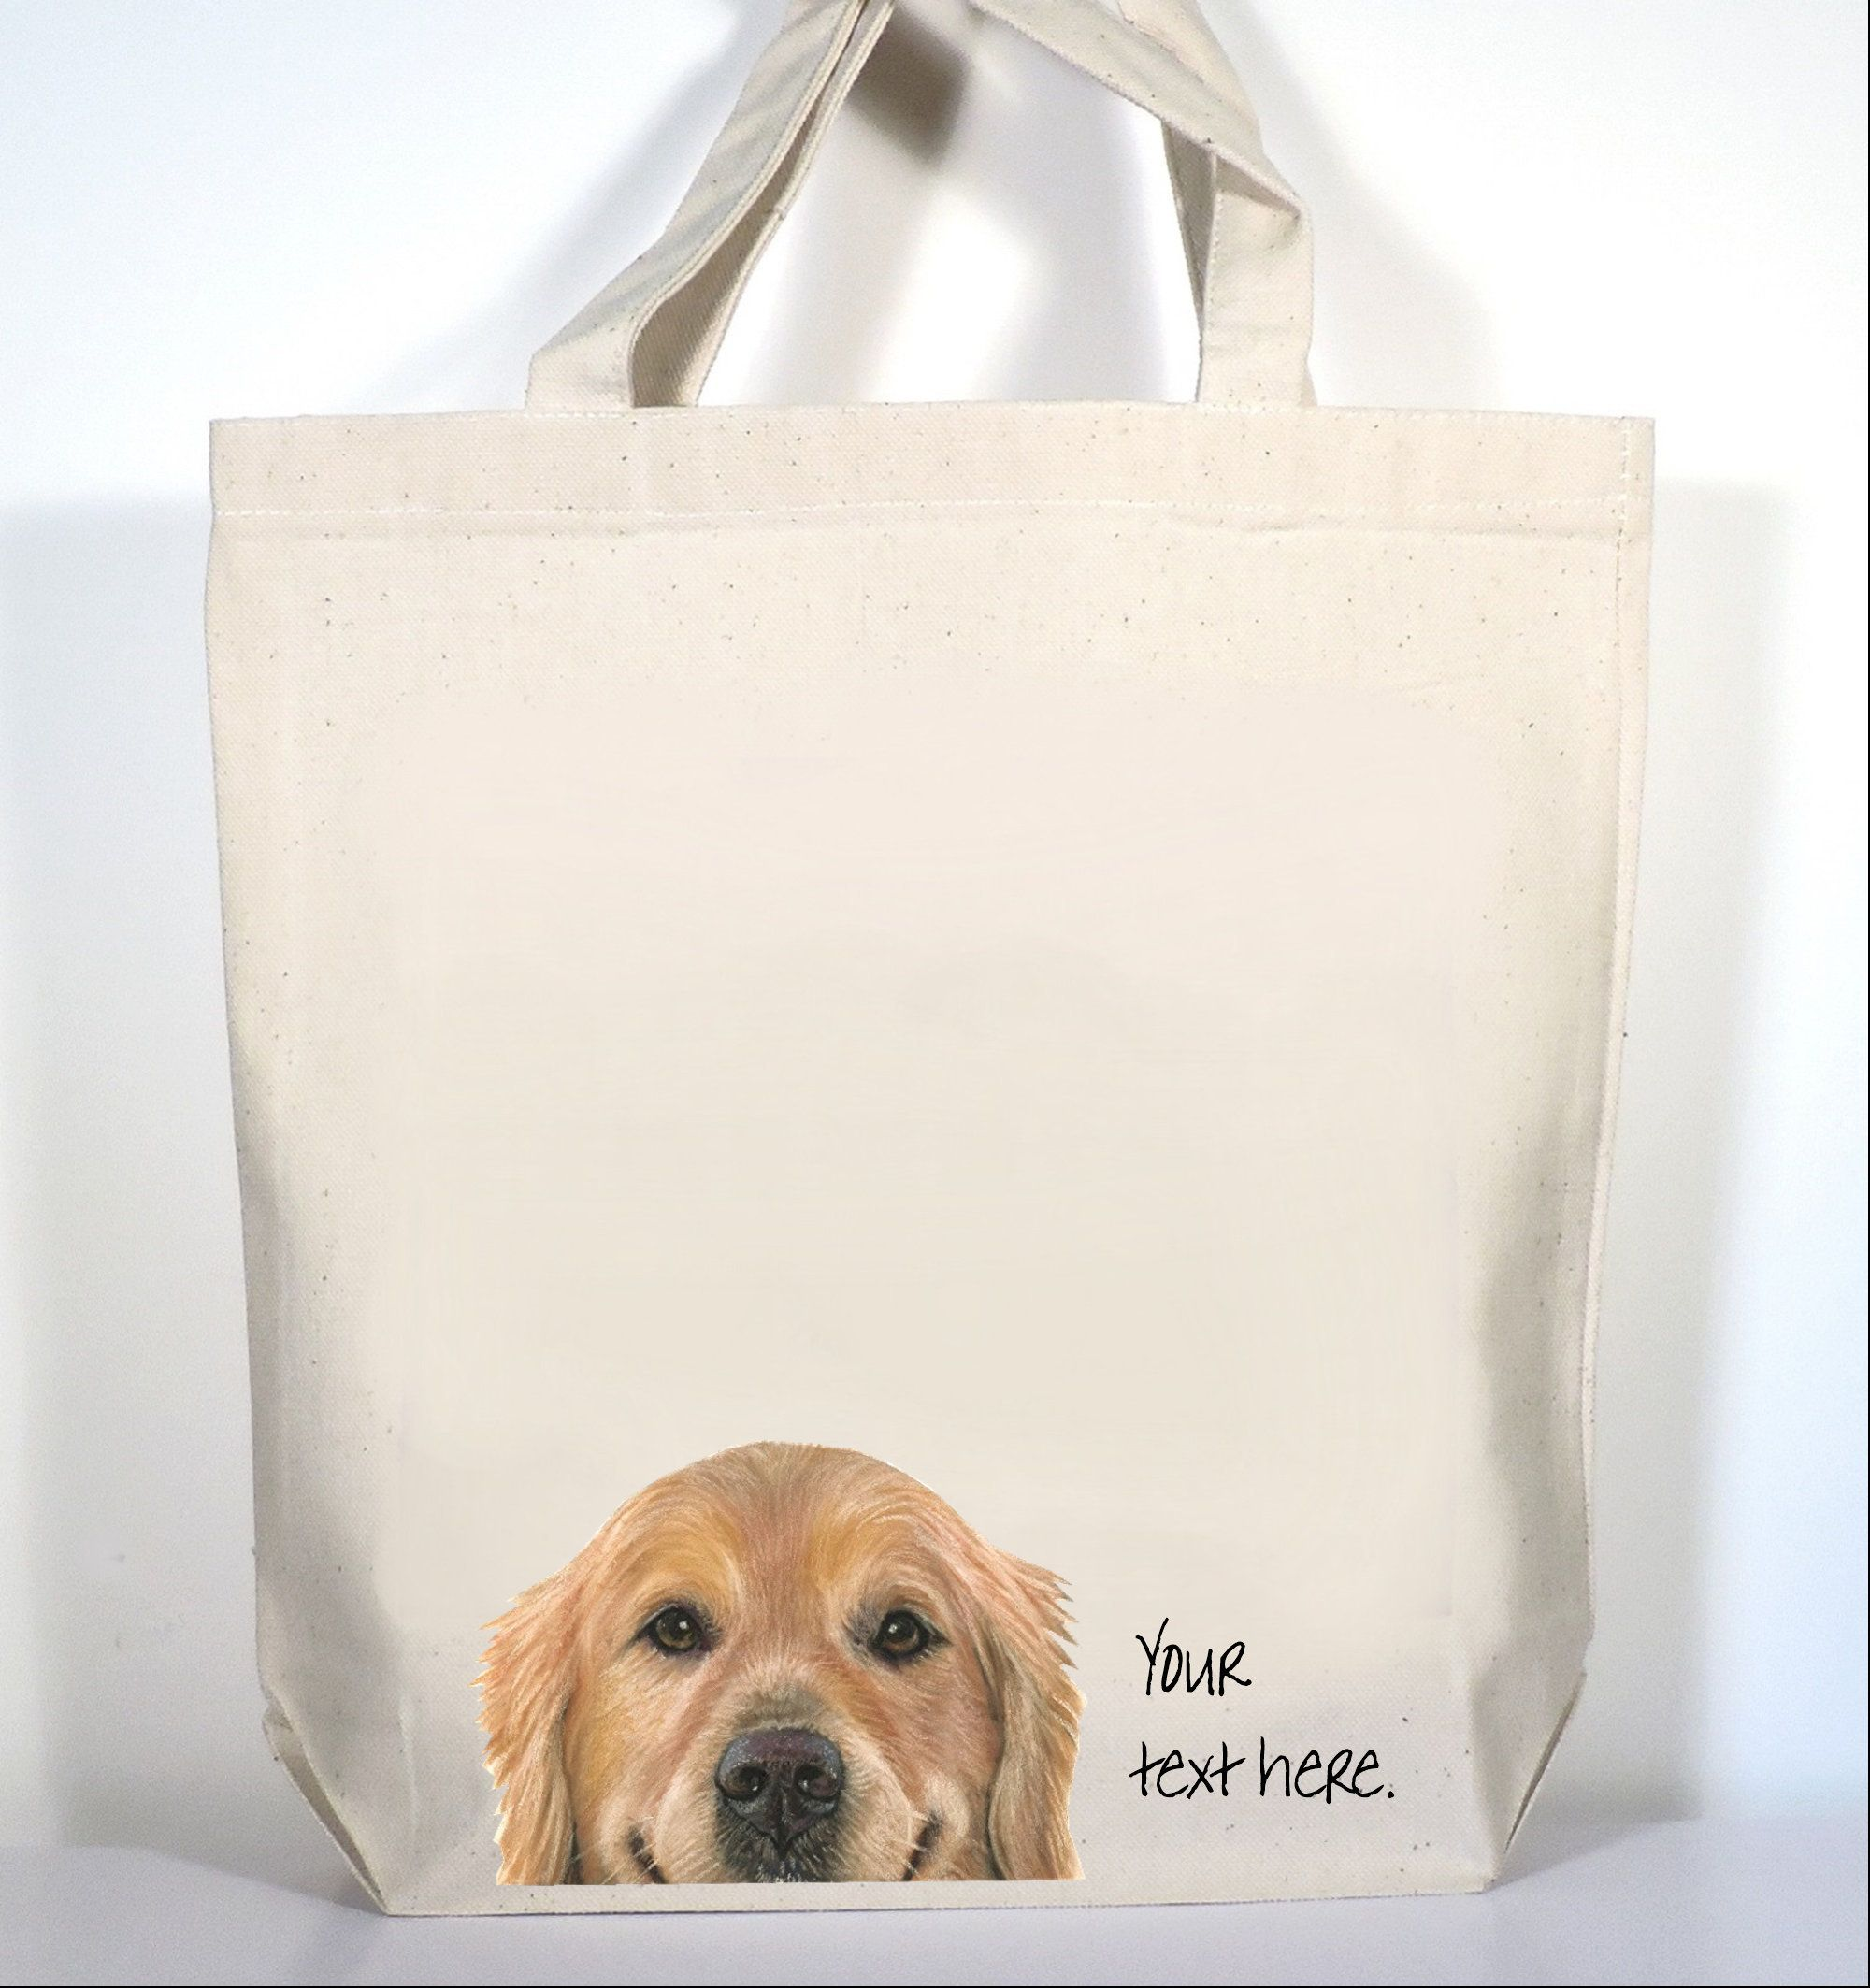 Golden Retriever Tote Golden Retriever Gift Golden Retriever Shopping Bag Includes Custom Text In 2020 Golden Retriever Gifts Tote Gifts For Pet Lovers